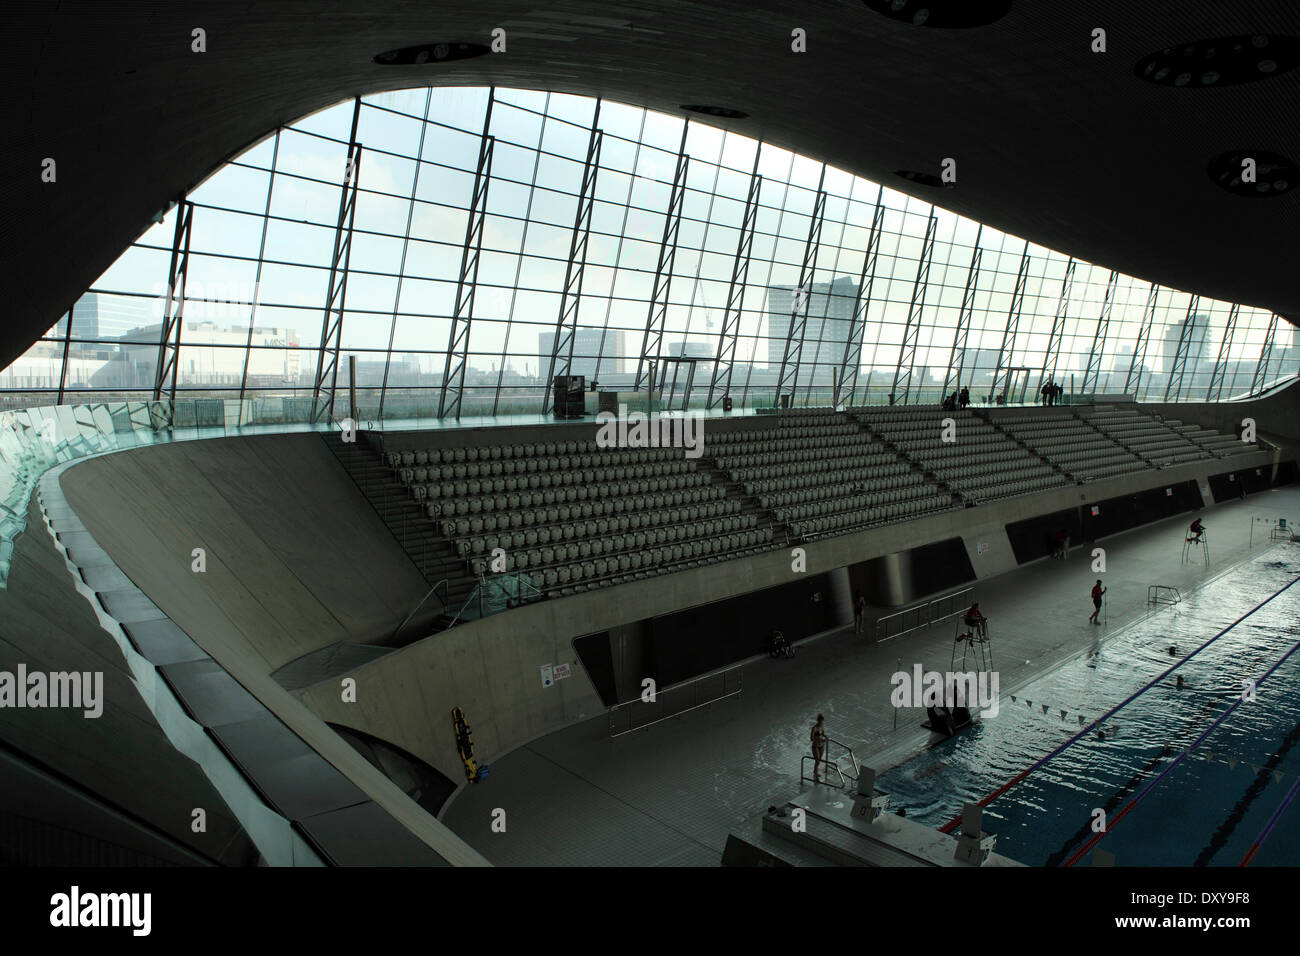 The Aquatics Centre In The Queen Elizabeth Olympic Park In London Stock Photo Royalty Free